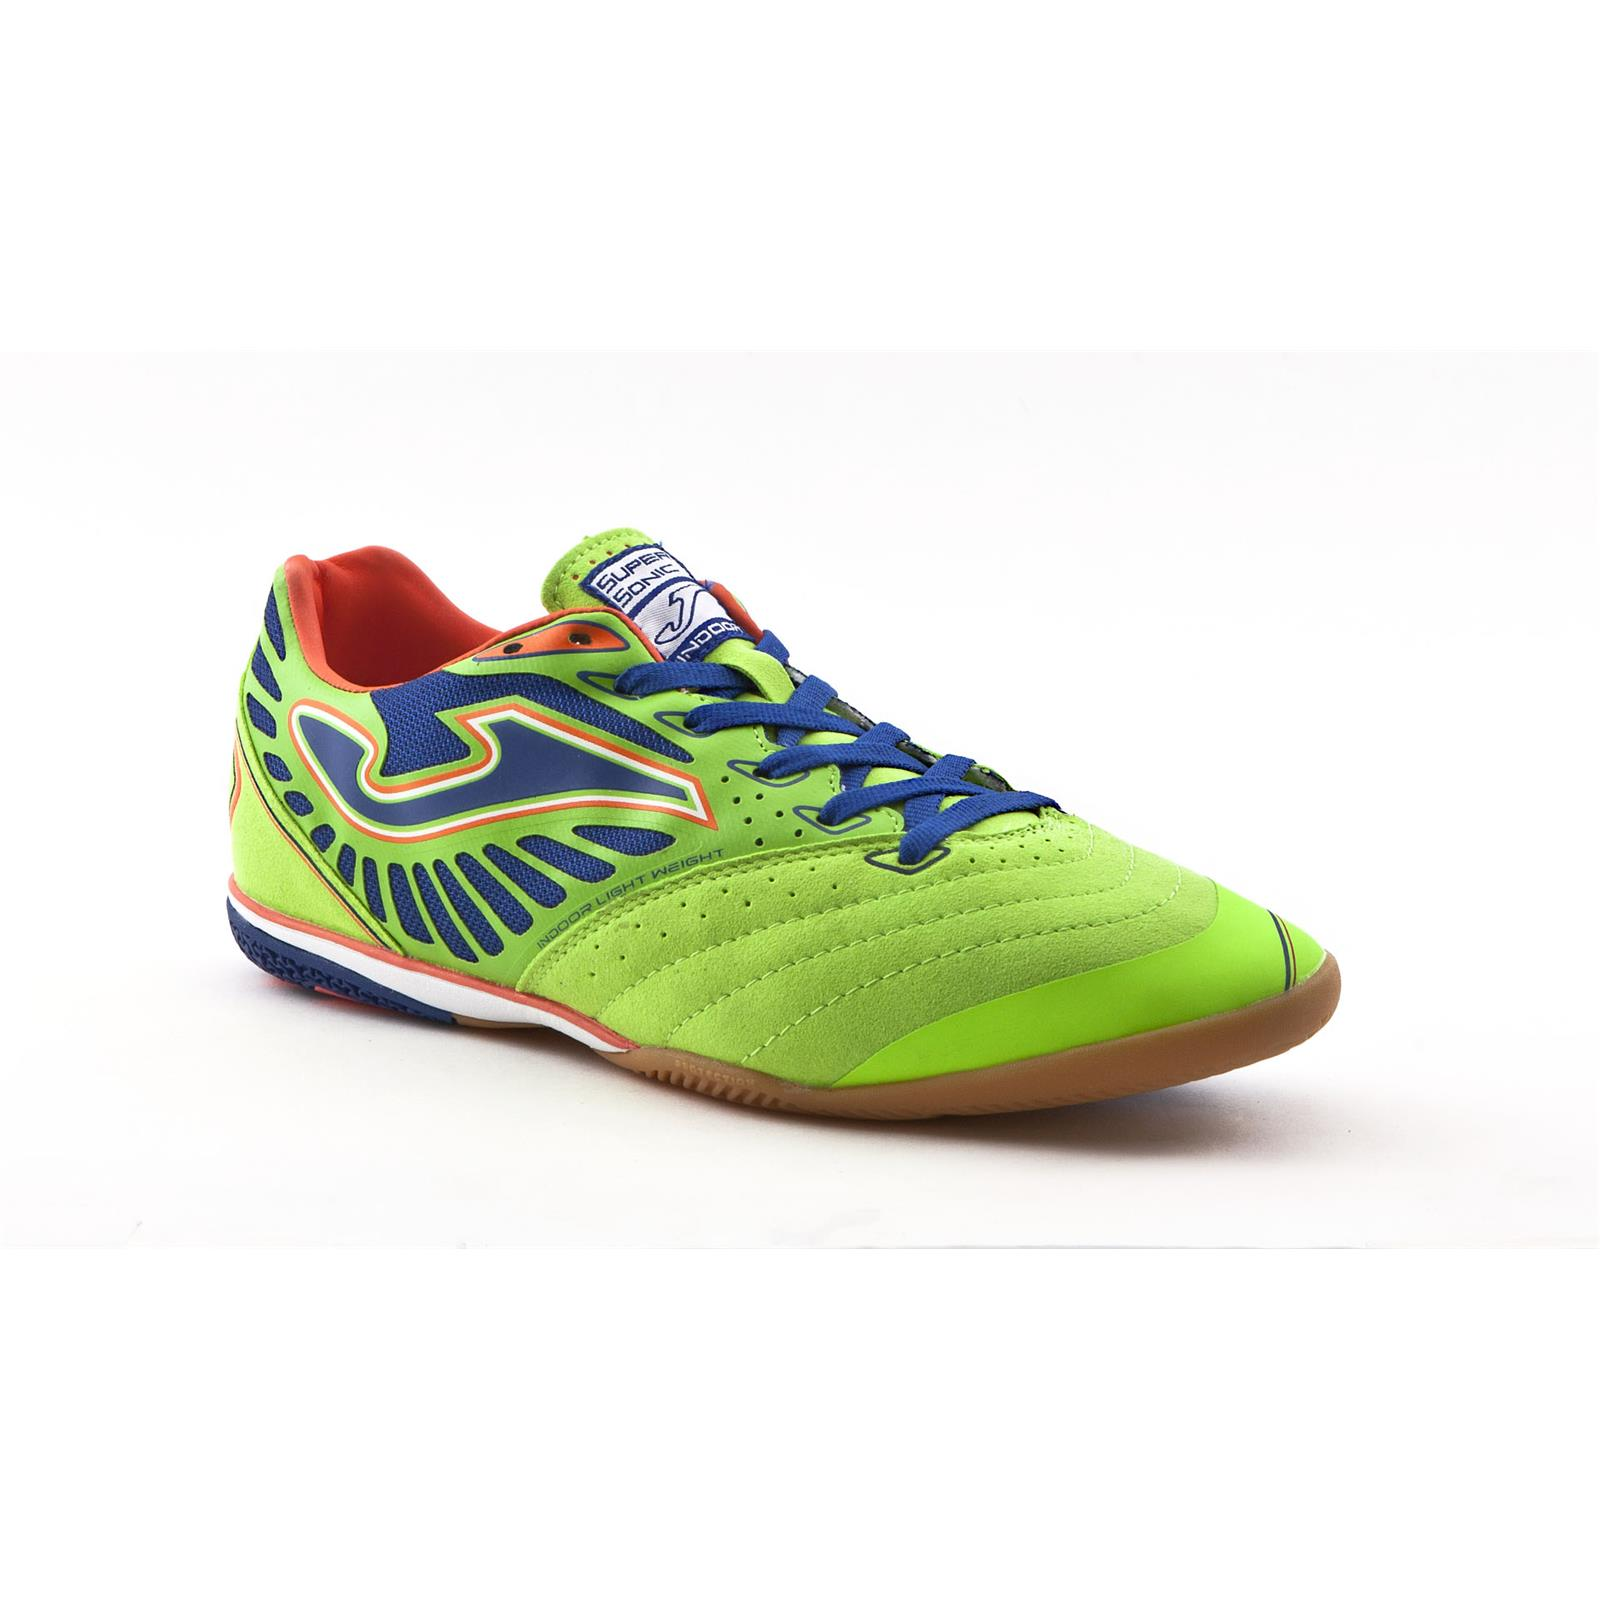 JOMA Scarpa calcetto sala Supersonic 411 (43.5 - VERDE)